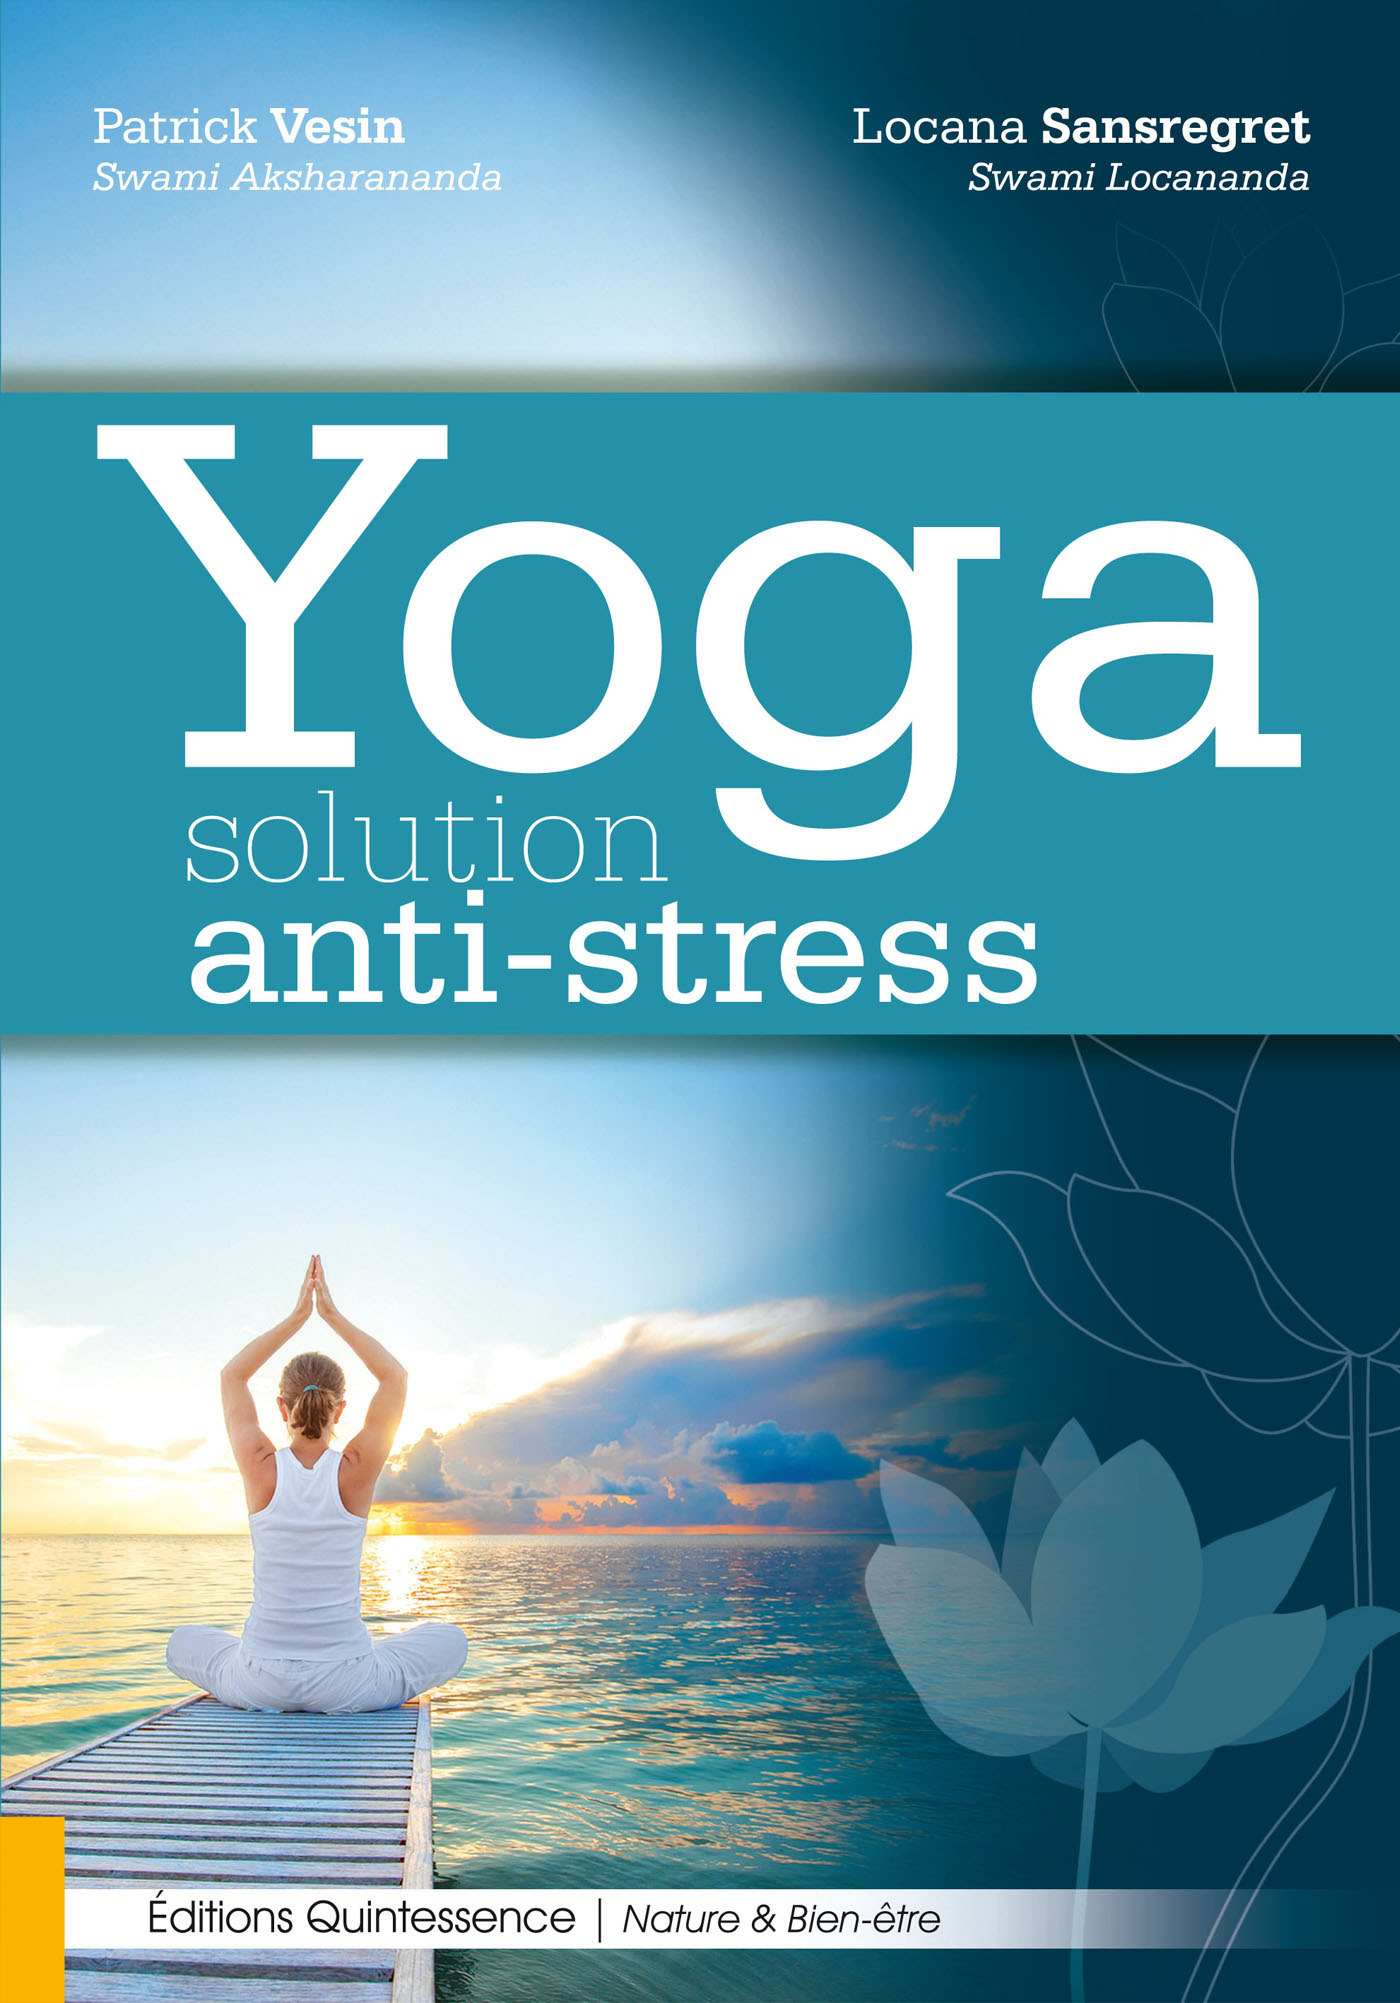 Patrick  Vesin Yoga - Solution anti-stress